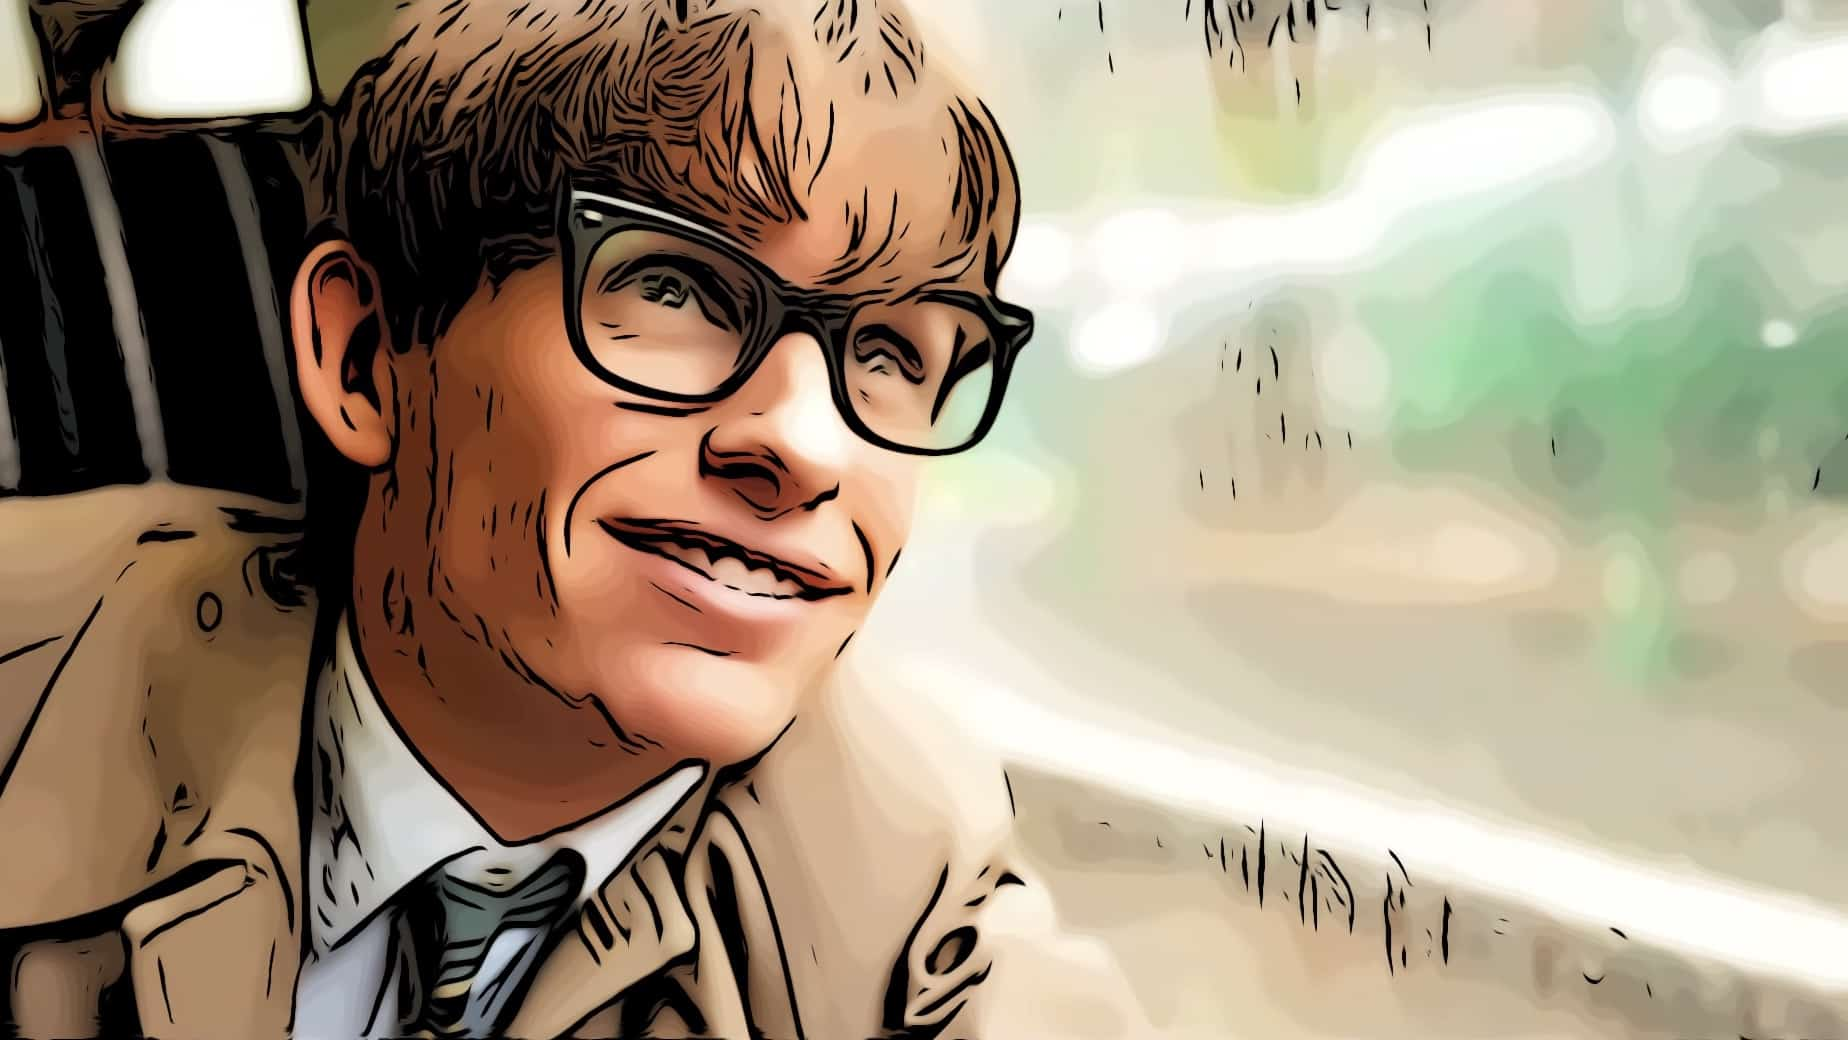 Stephan Hawking in The Theory Of Everything for best inspirational movies post.